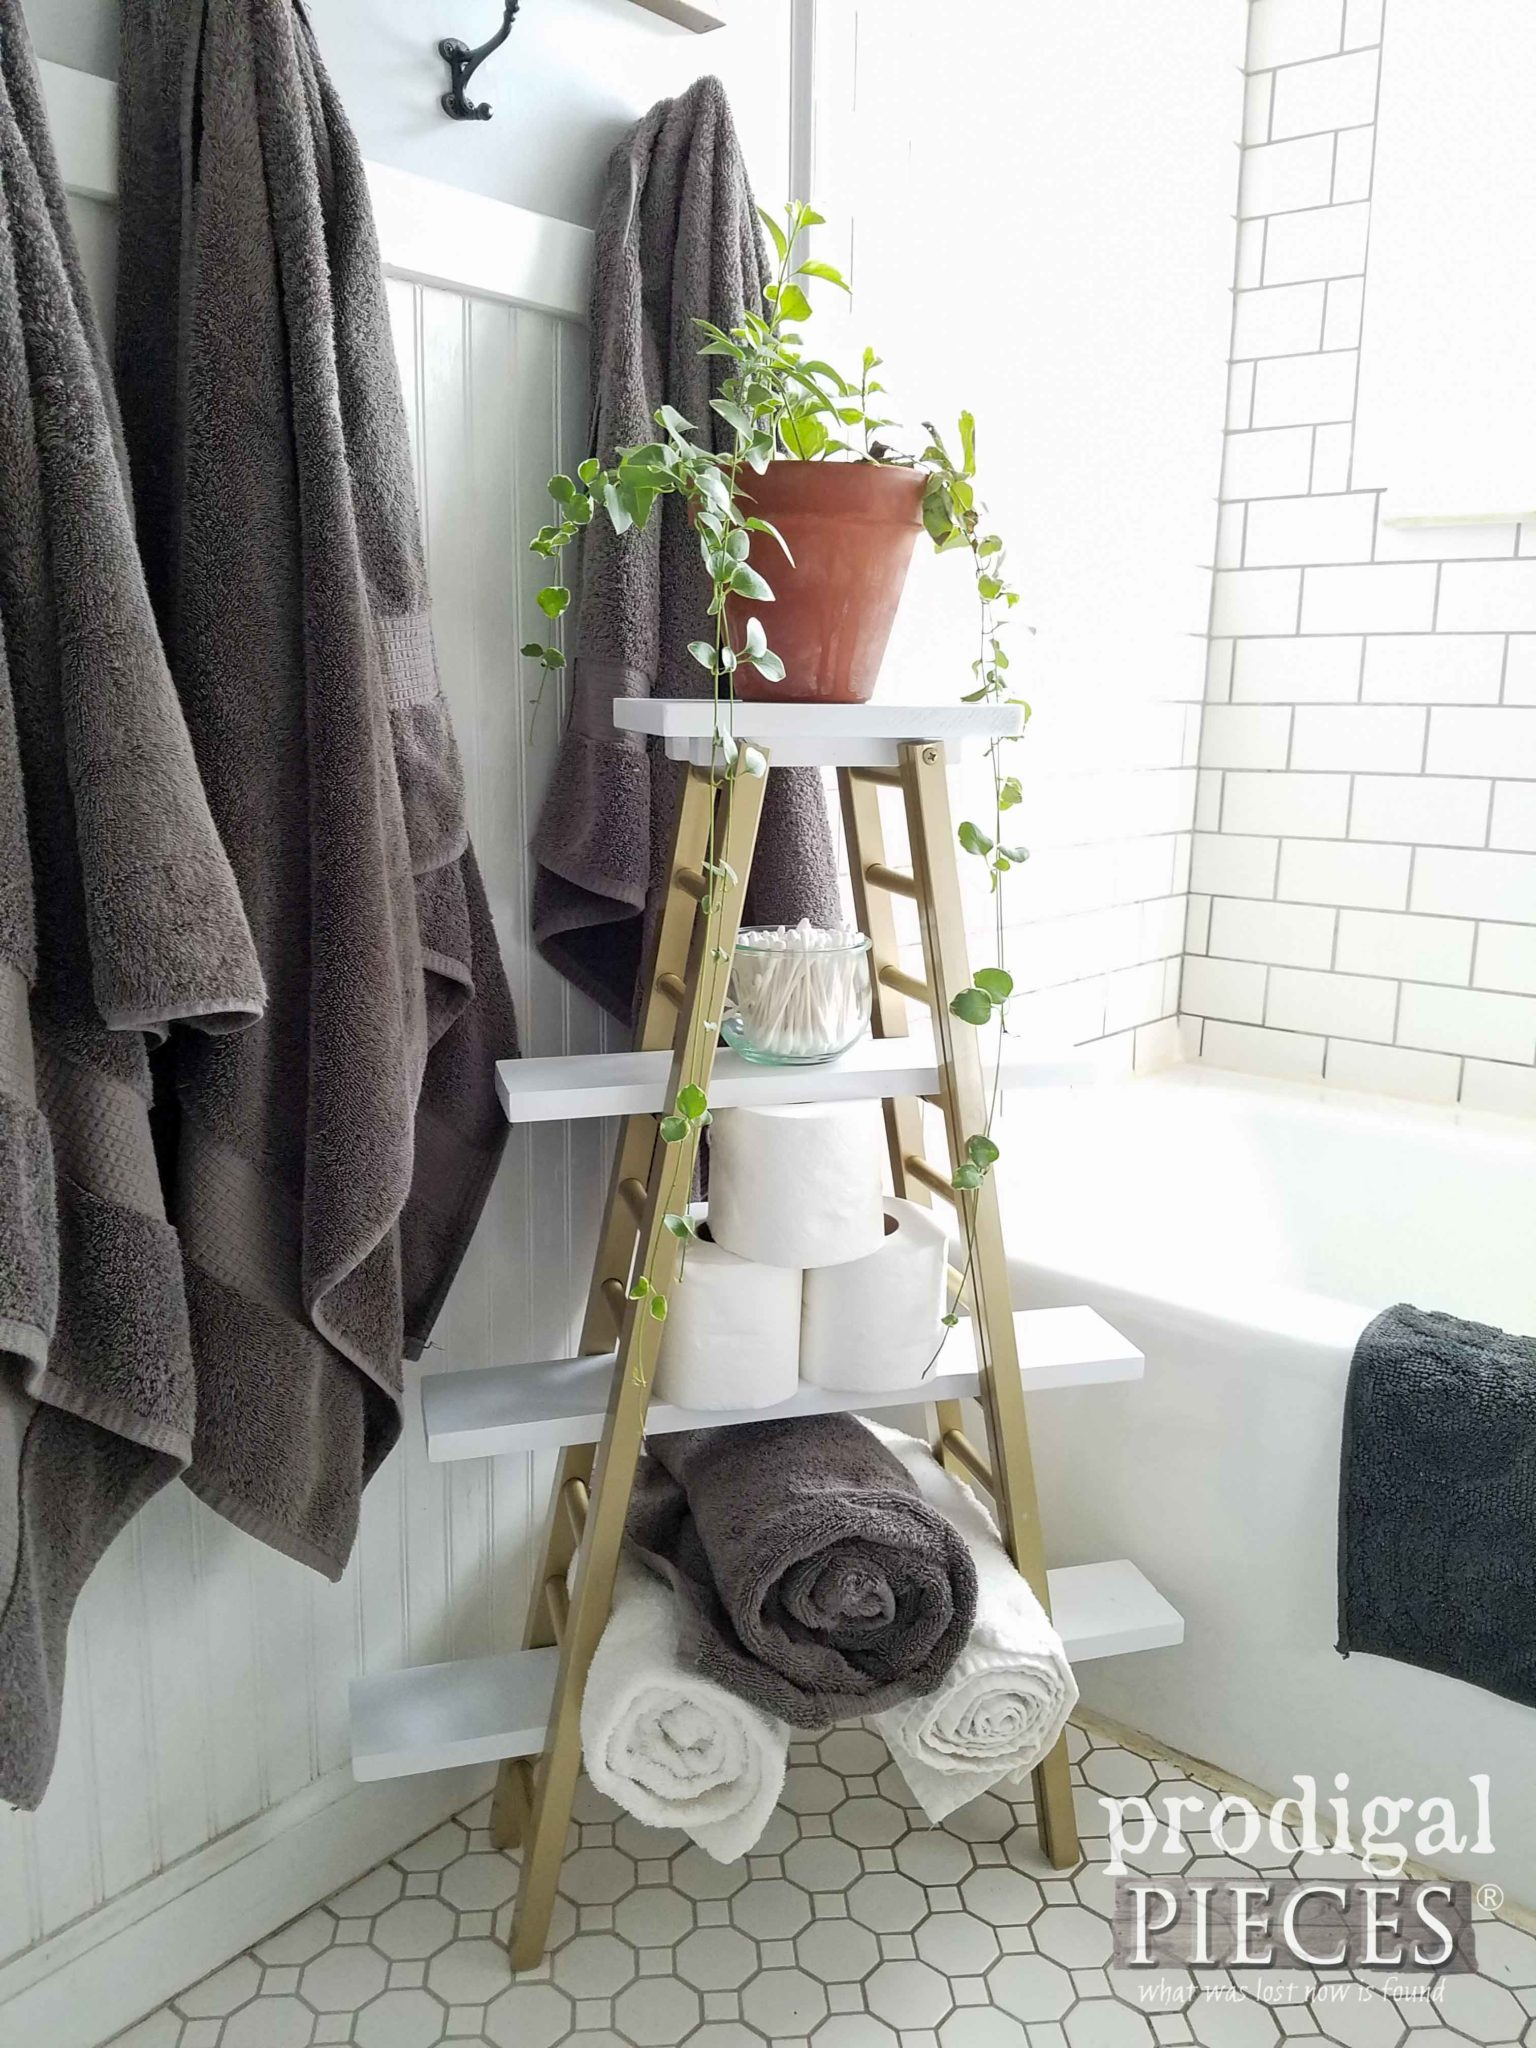 Repurposed Towel Rack for Modern Chic Boho Bathroom Decor from Bed Rails by Prodigal Pieces | prodigalpieces.com